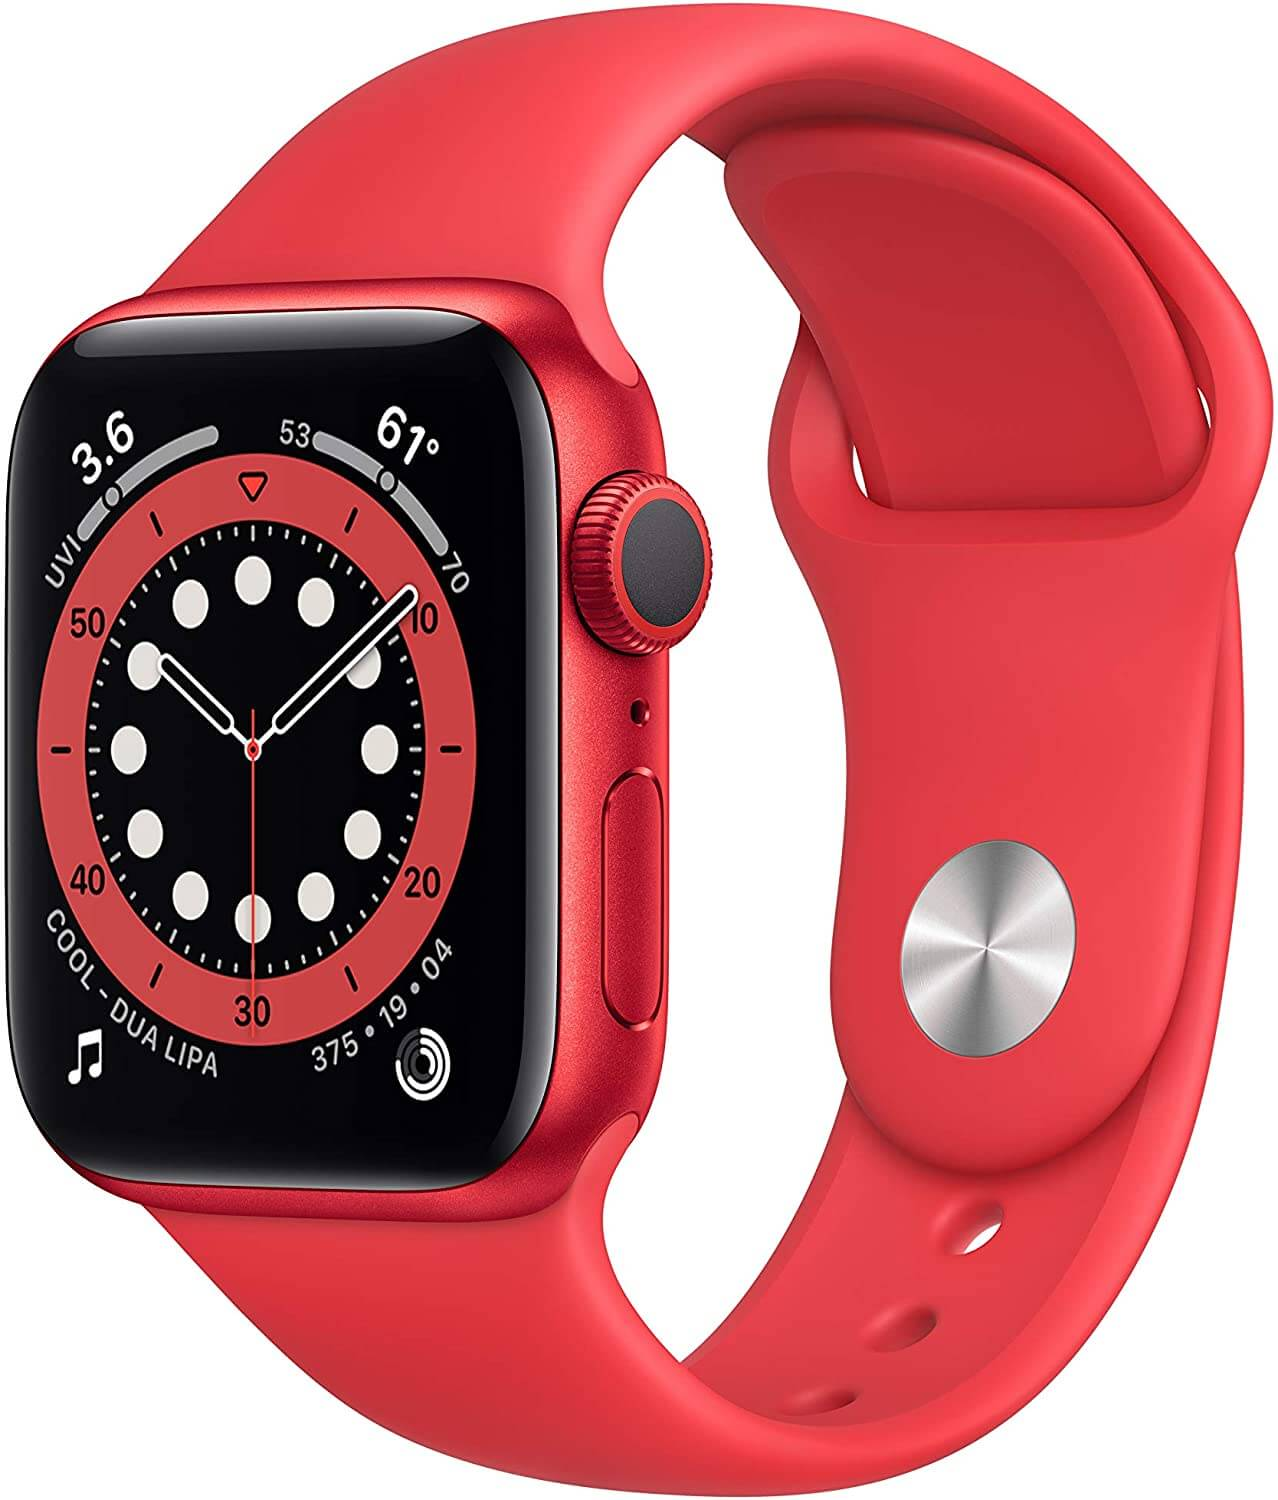 Apple Watch Series 6 (RED)